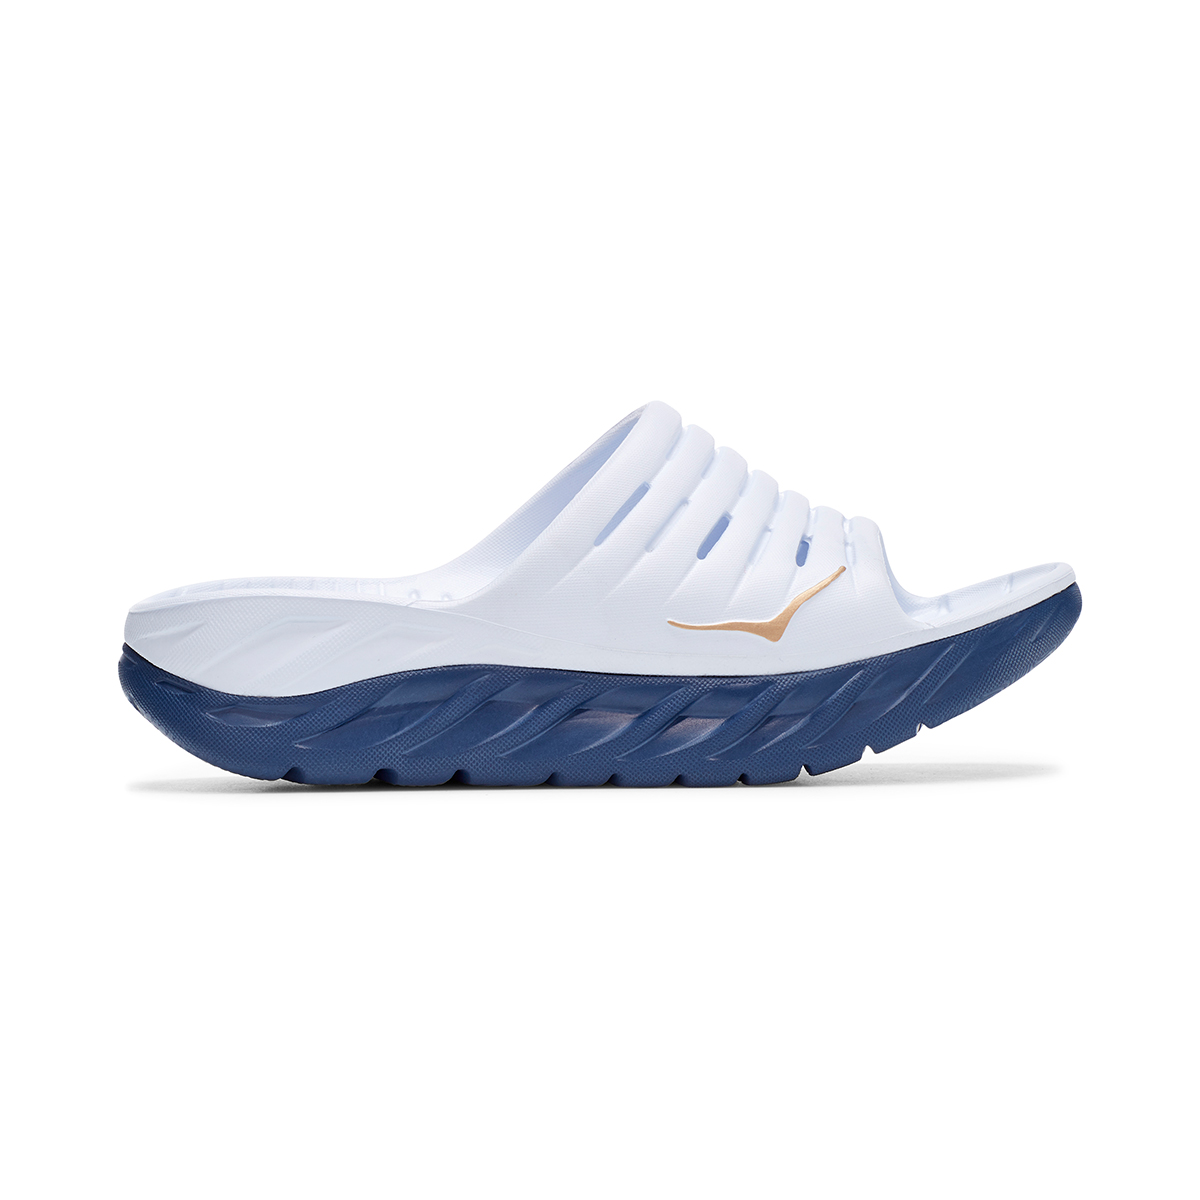 Women's Hoka One One Ora Recovery Slide - Color: White/Vintage - Size: 5 - Width: Regular, White/Vintage, large, image 1